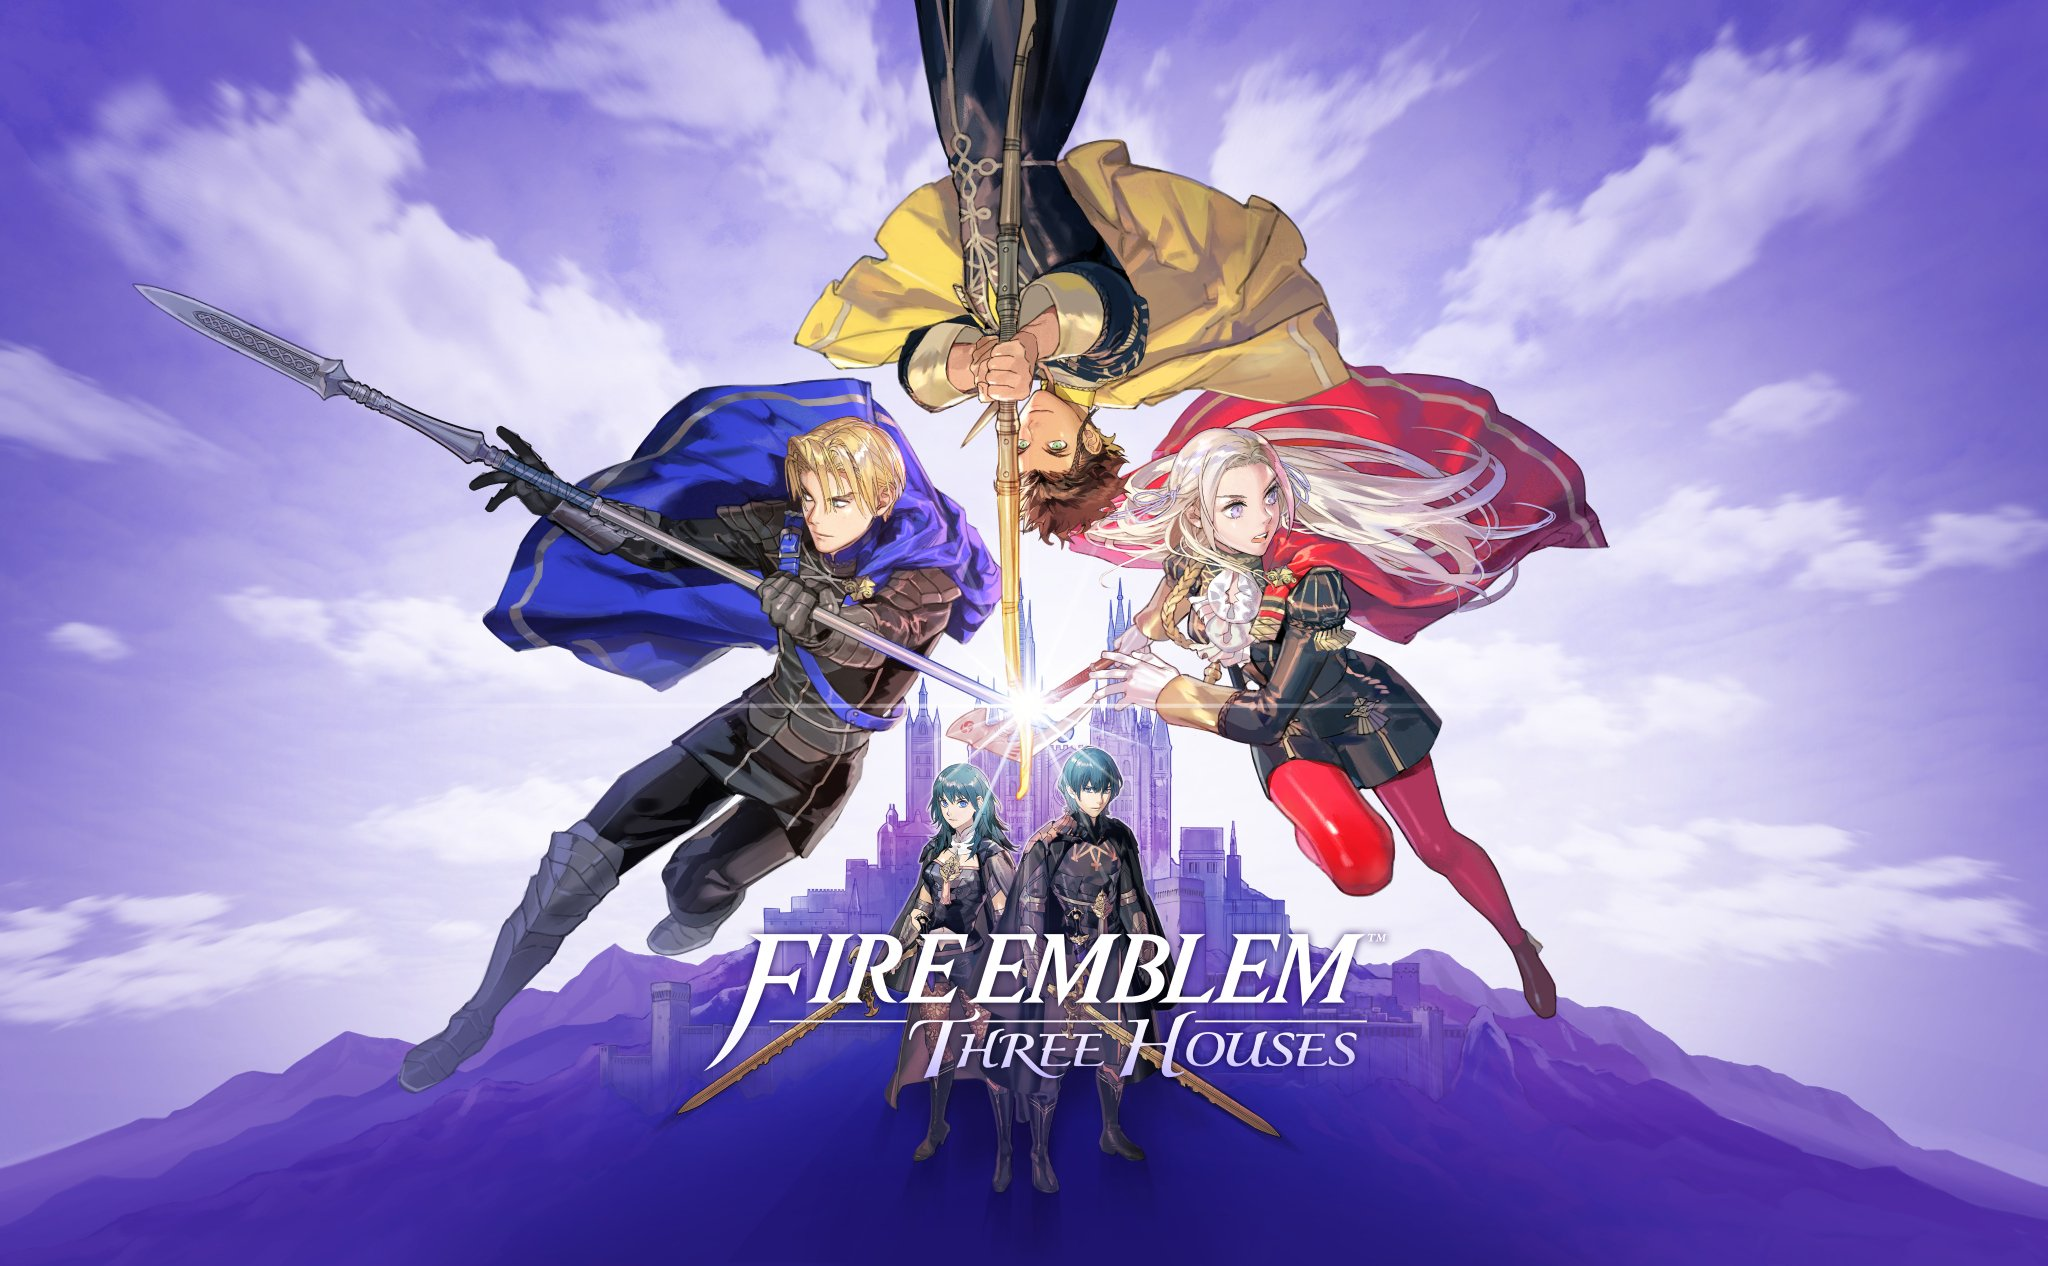 Fondos de pantalla Fire Emblem: Three Houses Poster